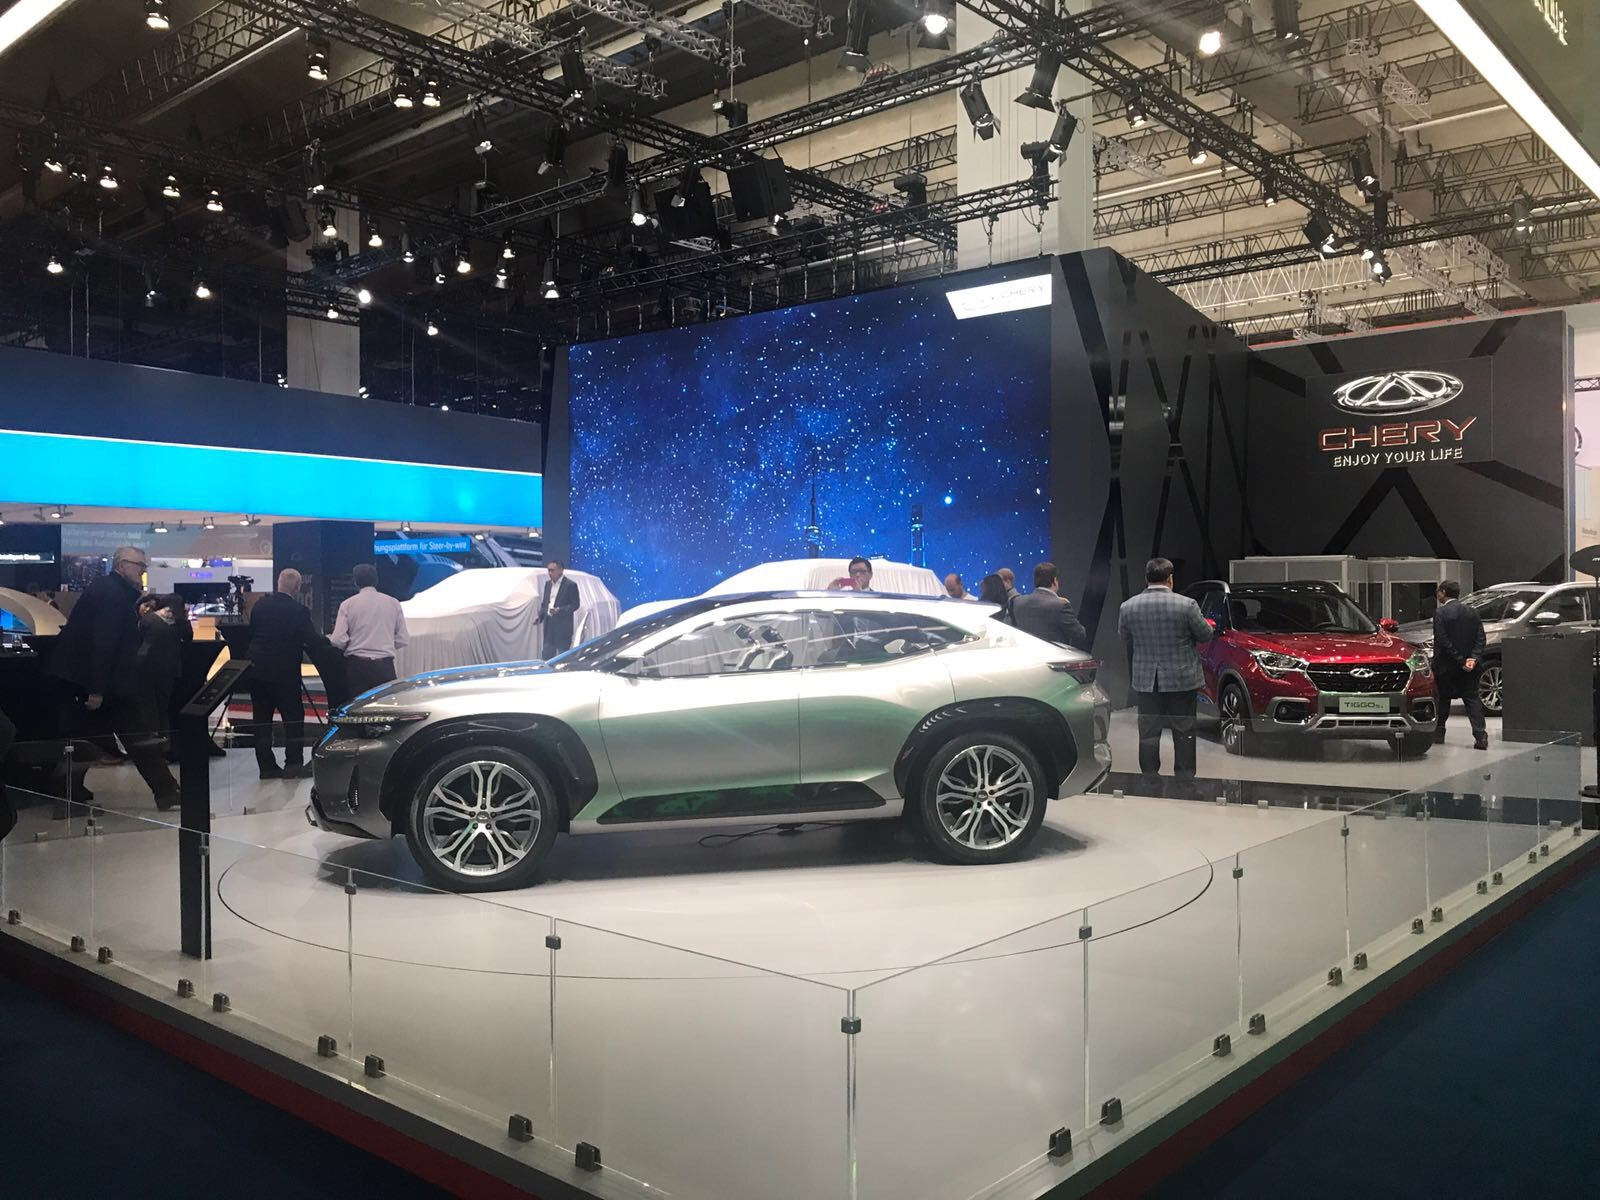 A picture of Chery's Exeed Tx unveiled at the 2017 IAA in Frankfurt.